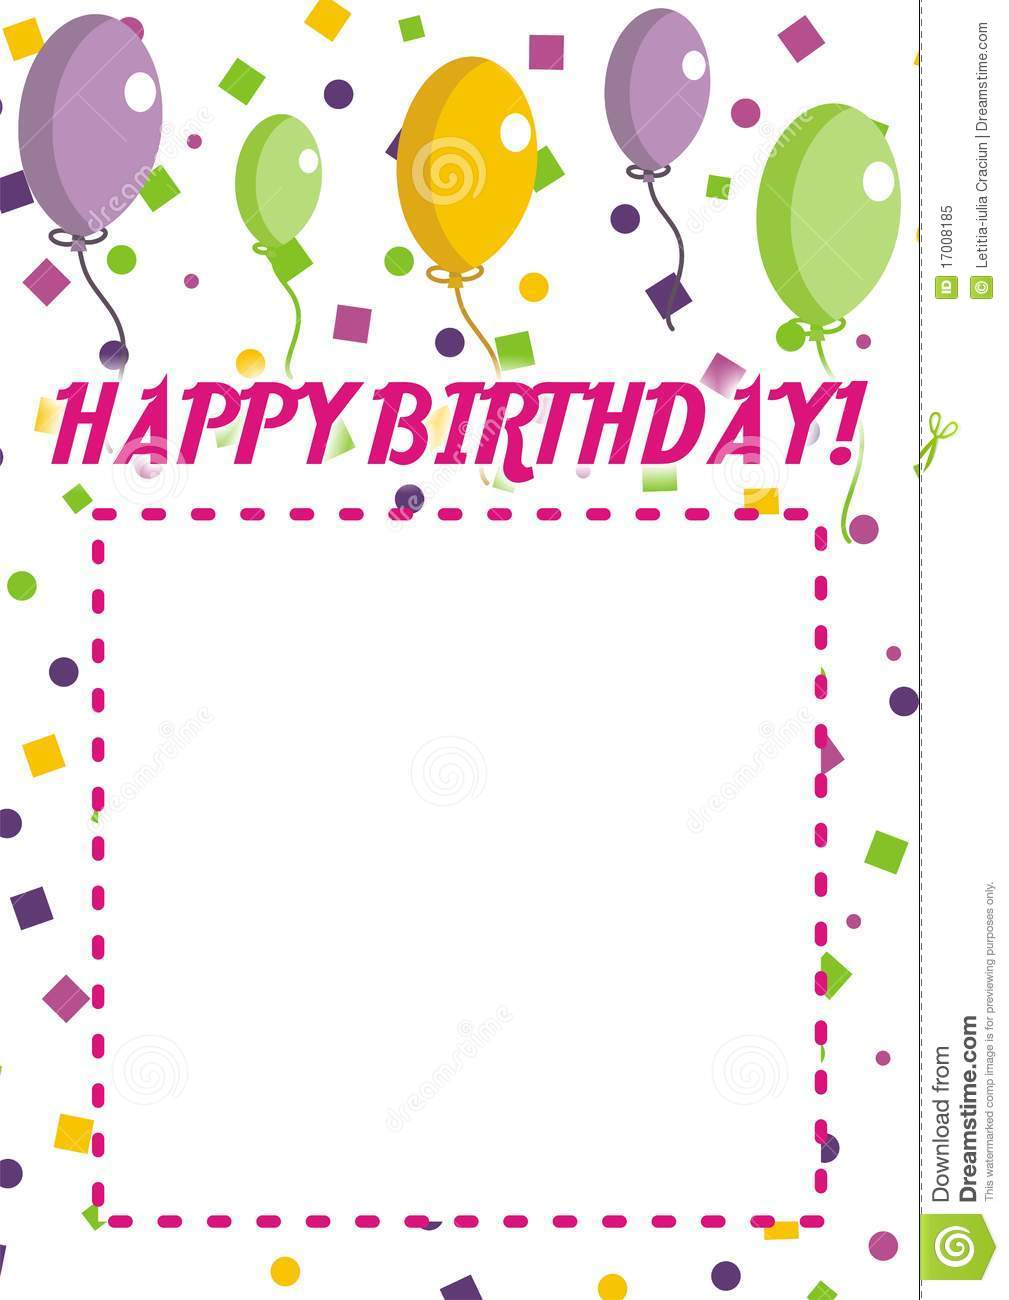 Happy Birthday Invitation Royalty Free Stock Photo - Image: 17008185